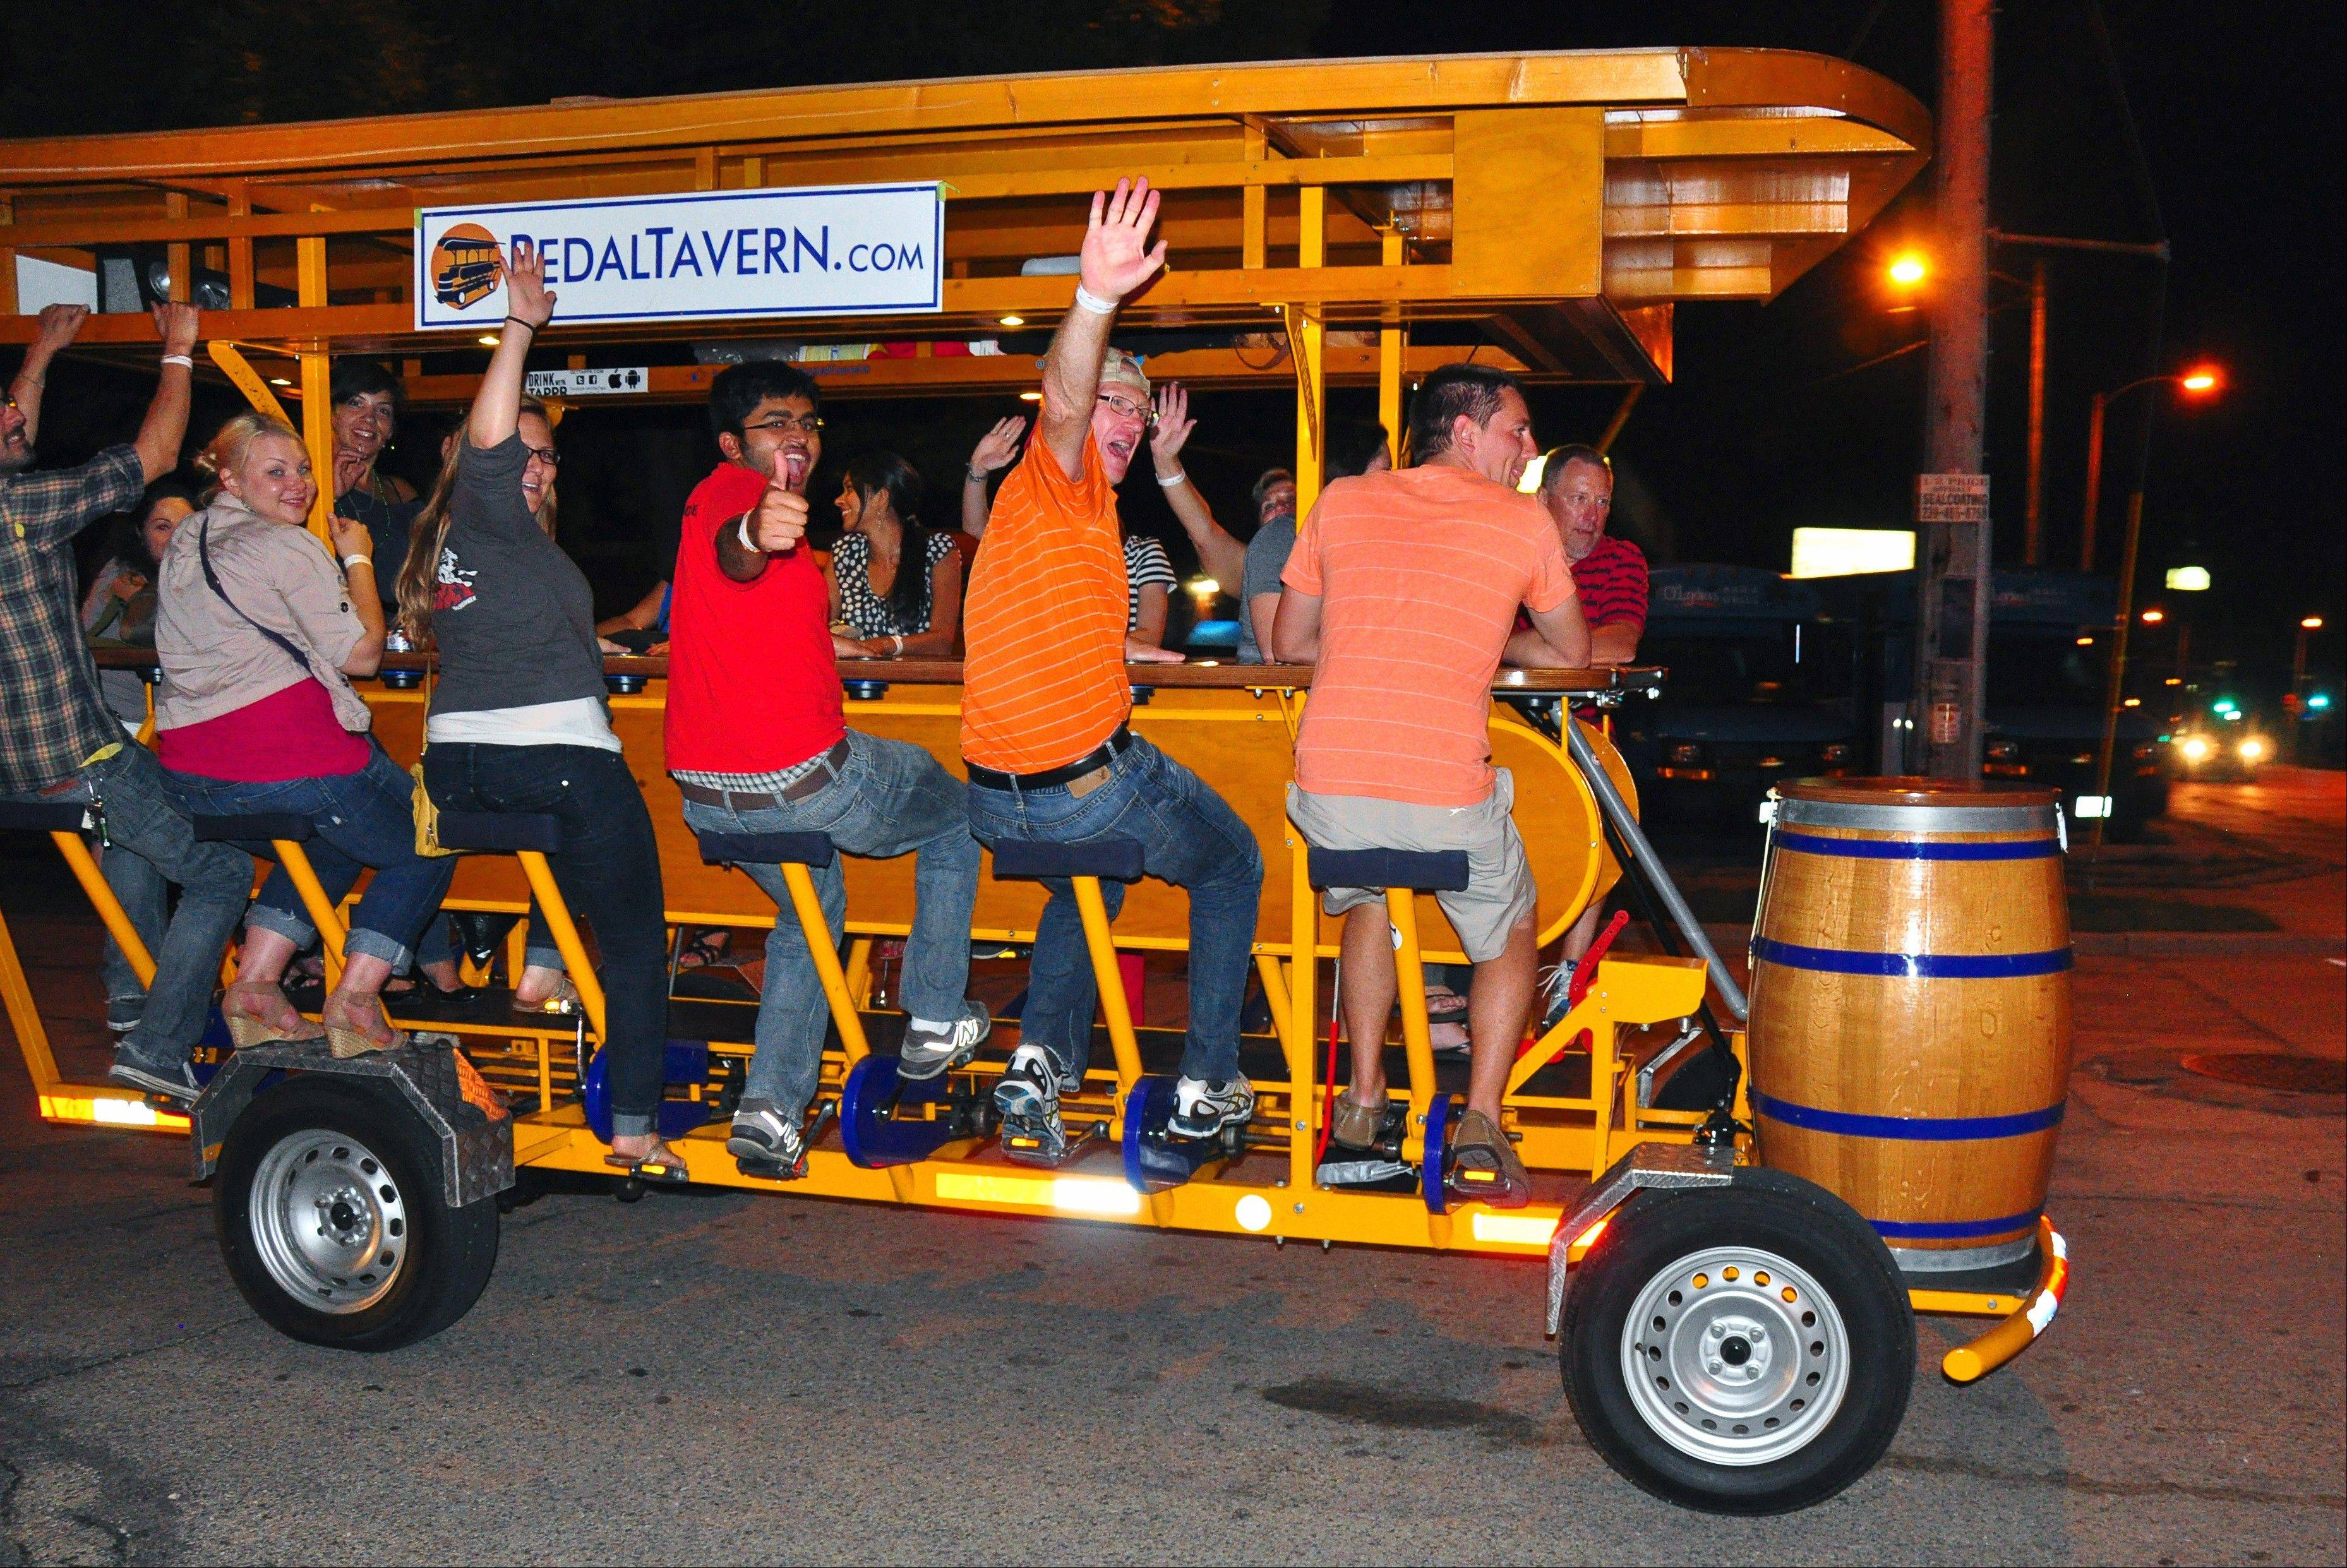 Revelers ride the Milwaukee Pedal Tavern from bar to bar in the Walker's Point neighborhood.